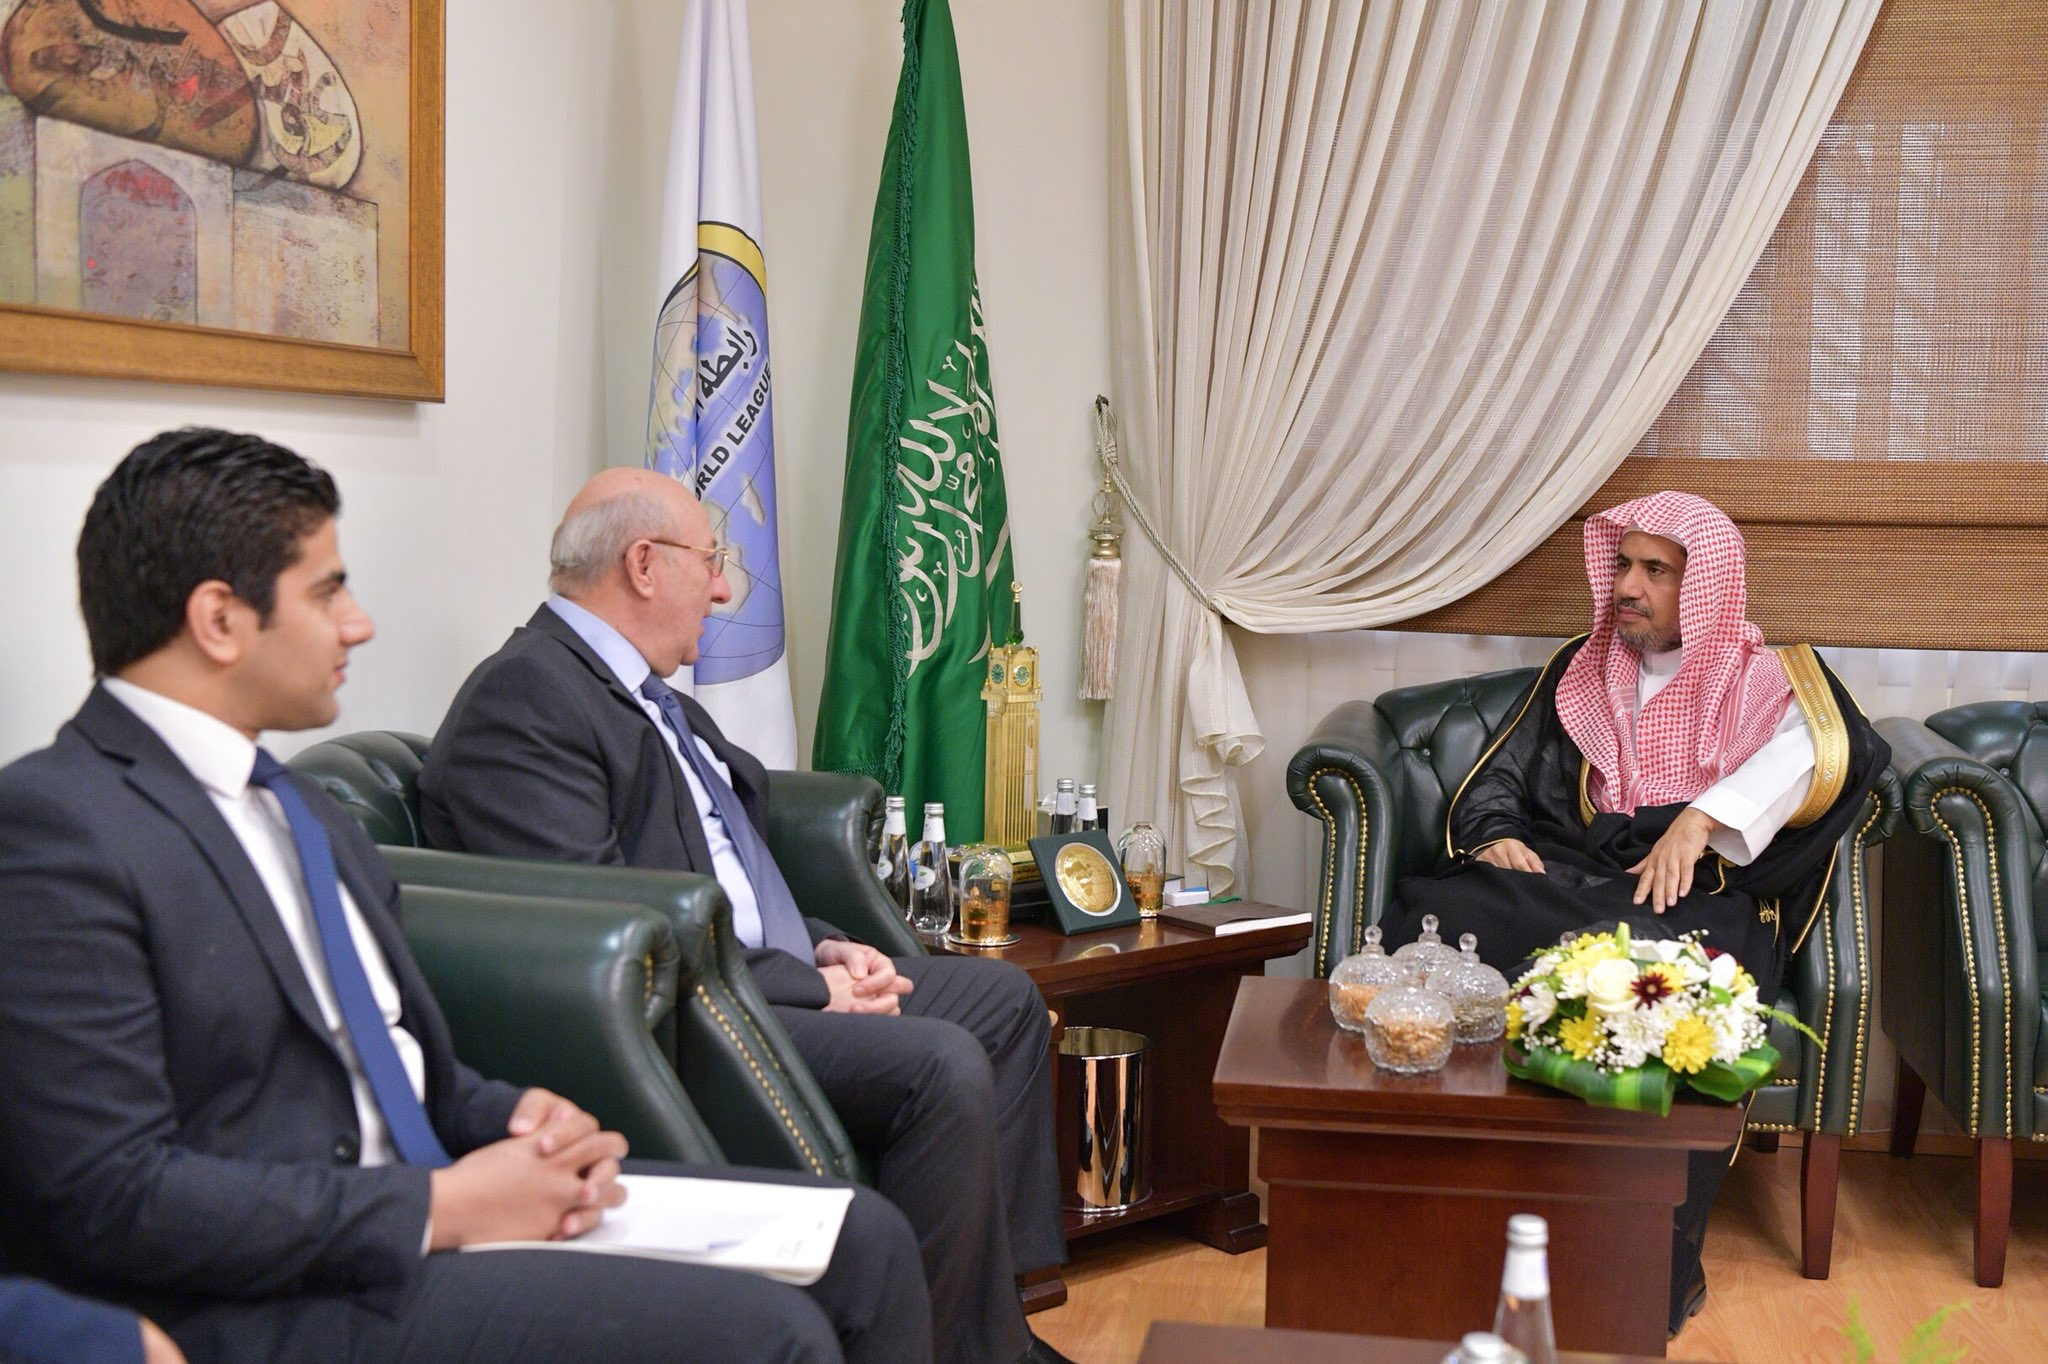 Dr. Mohamed Alissa received the Ambassador of the Arab Republic of Egypt to the Kingdom